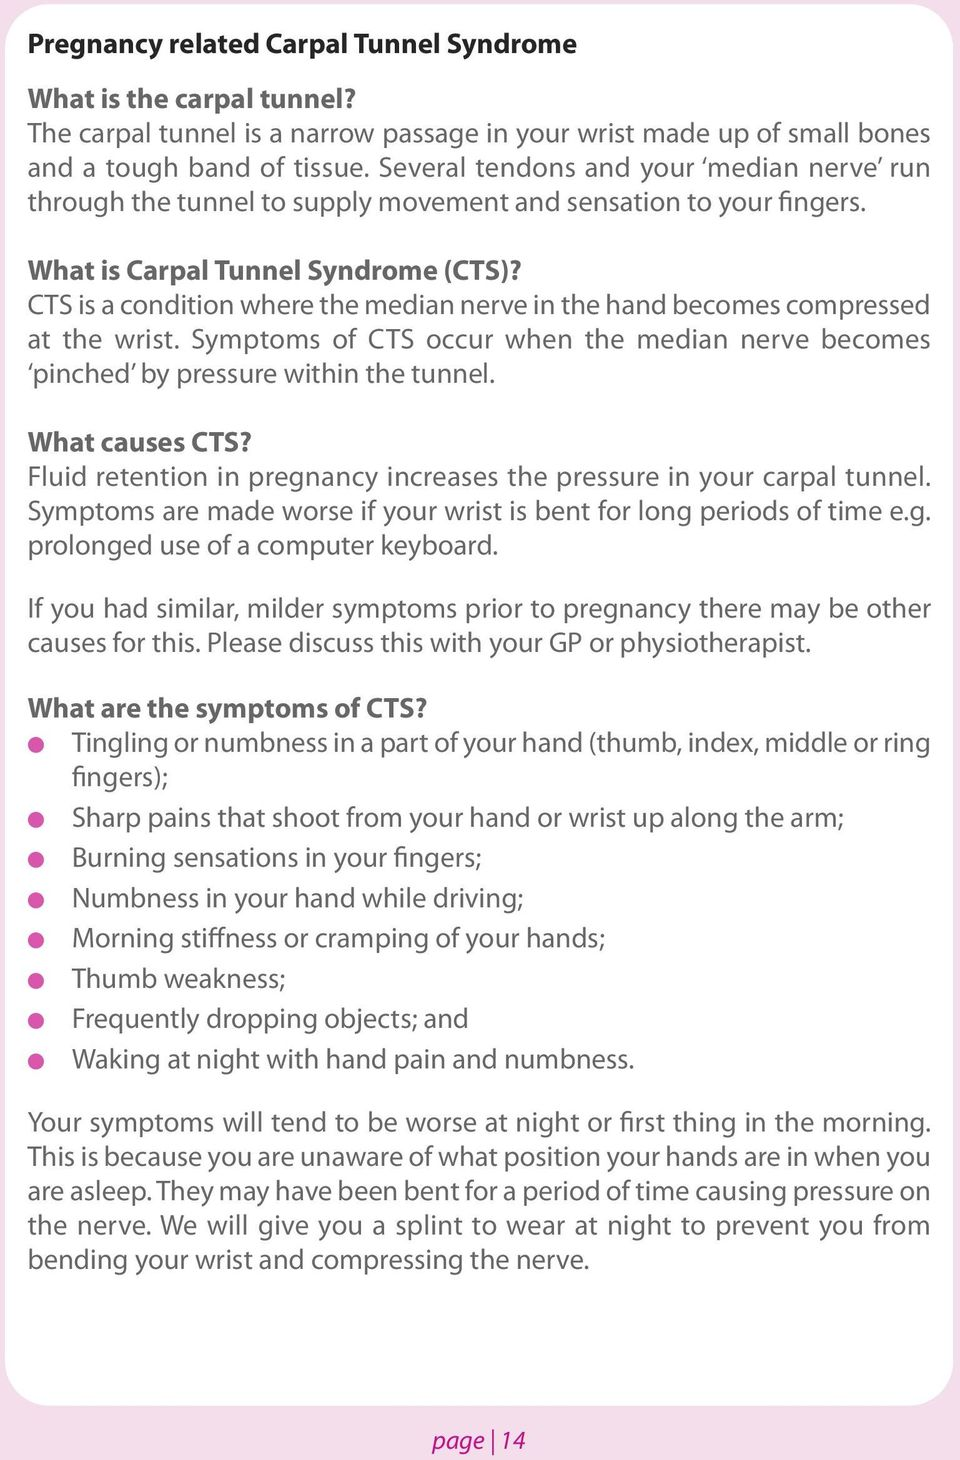 CTS is a condition where the median nerve in the hand becomes compressed at the wrist. Symptoms of CTS occur when the median nerve becomes pinched by pressure within the tunne. What causes CTS?